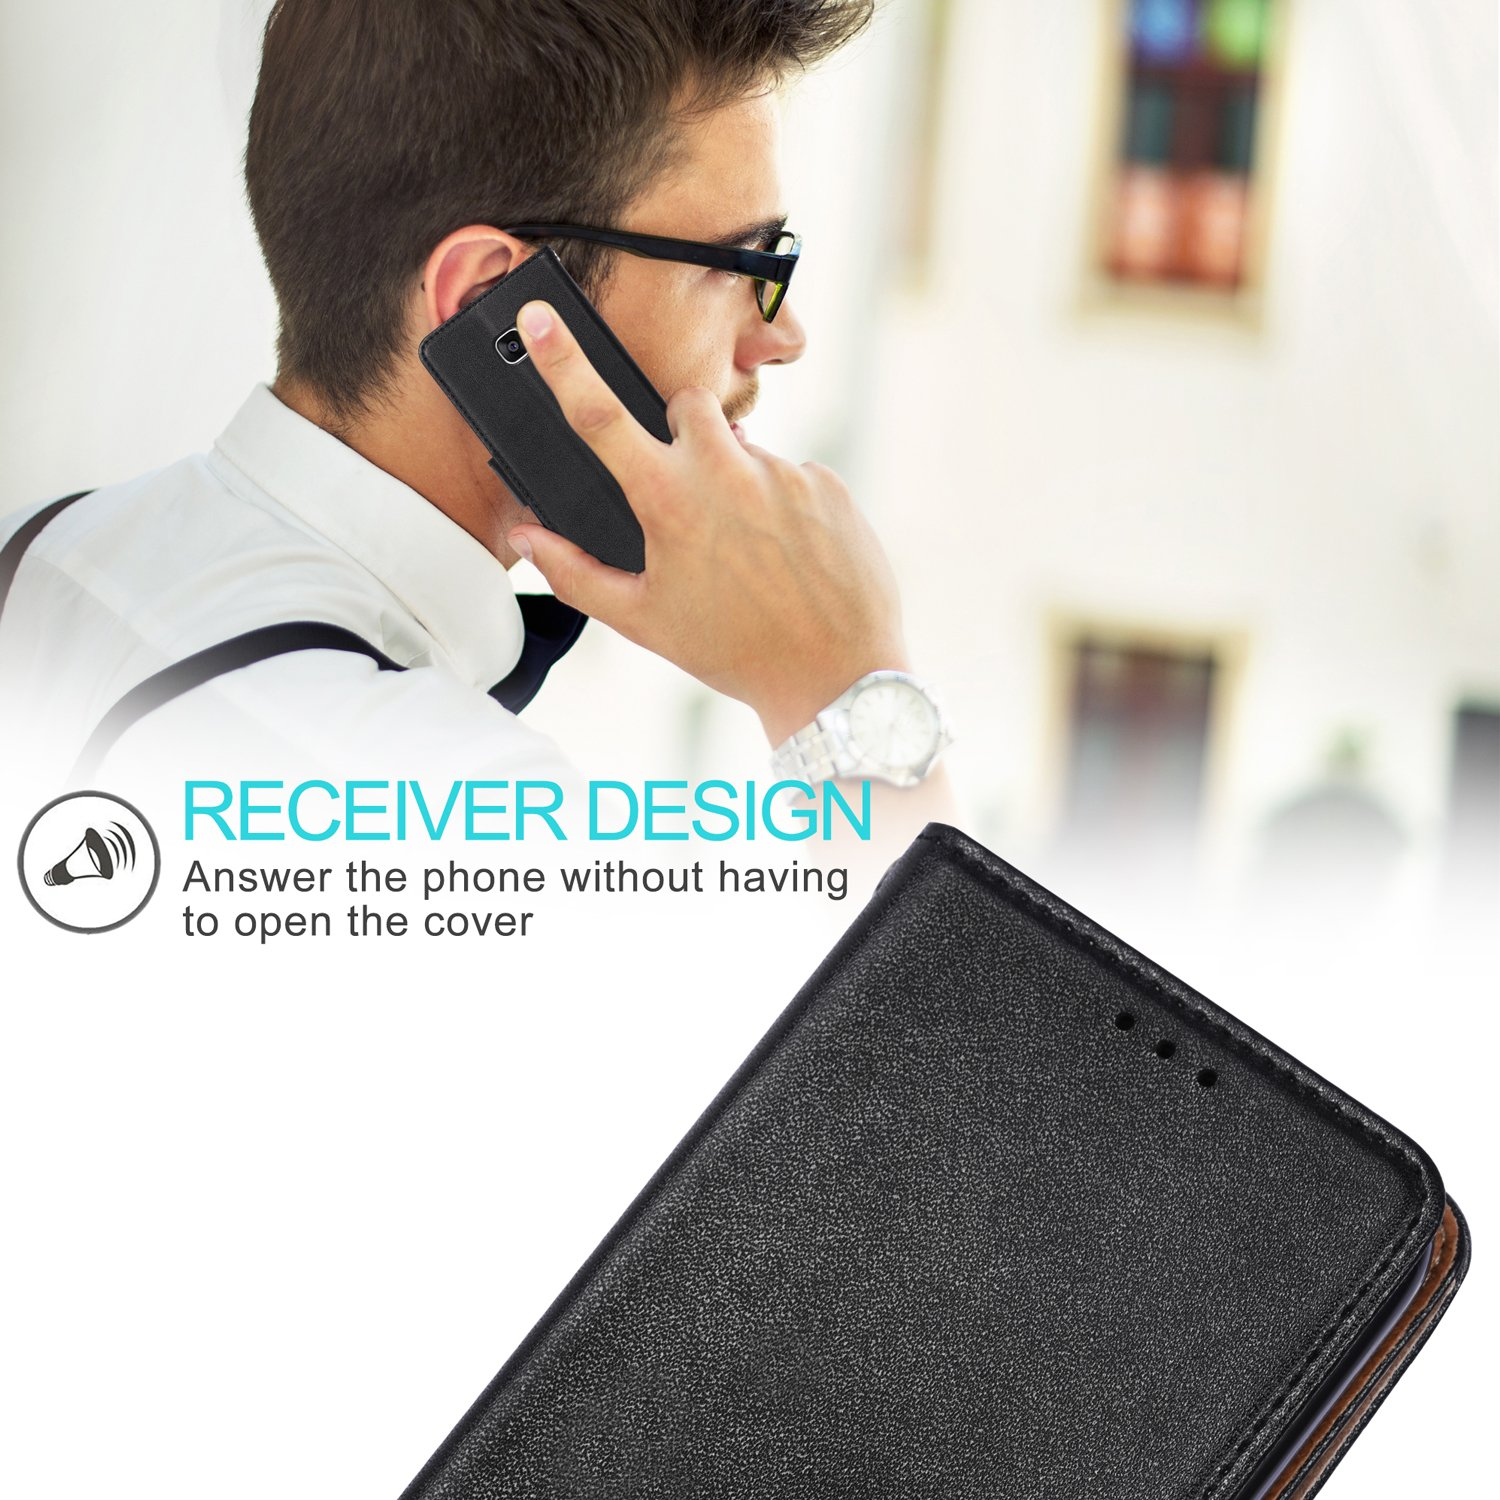 Galaxy S7 Case Aicoco Flip Cover Leather - Black 5.1 inch Phone Wallet Case for Samsung Galaxy S7